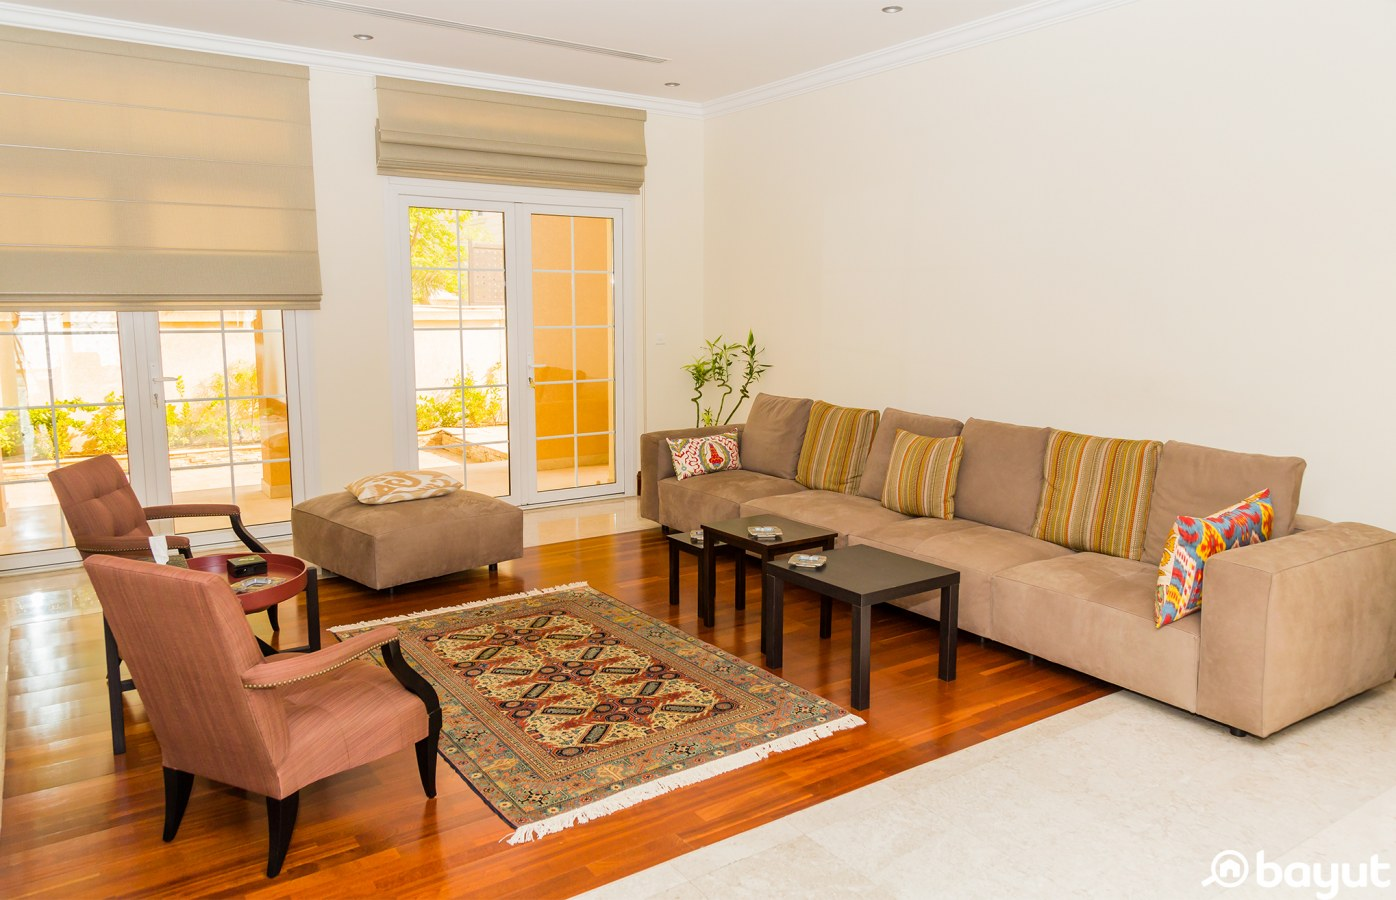 House of the Week with Bayut: 6-Bedroom Villa in Emirates Hills, Sitting Area